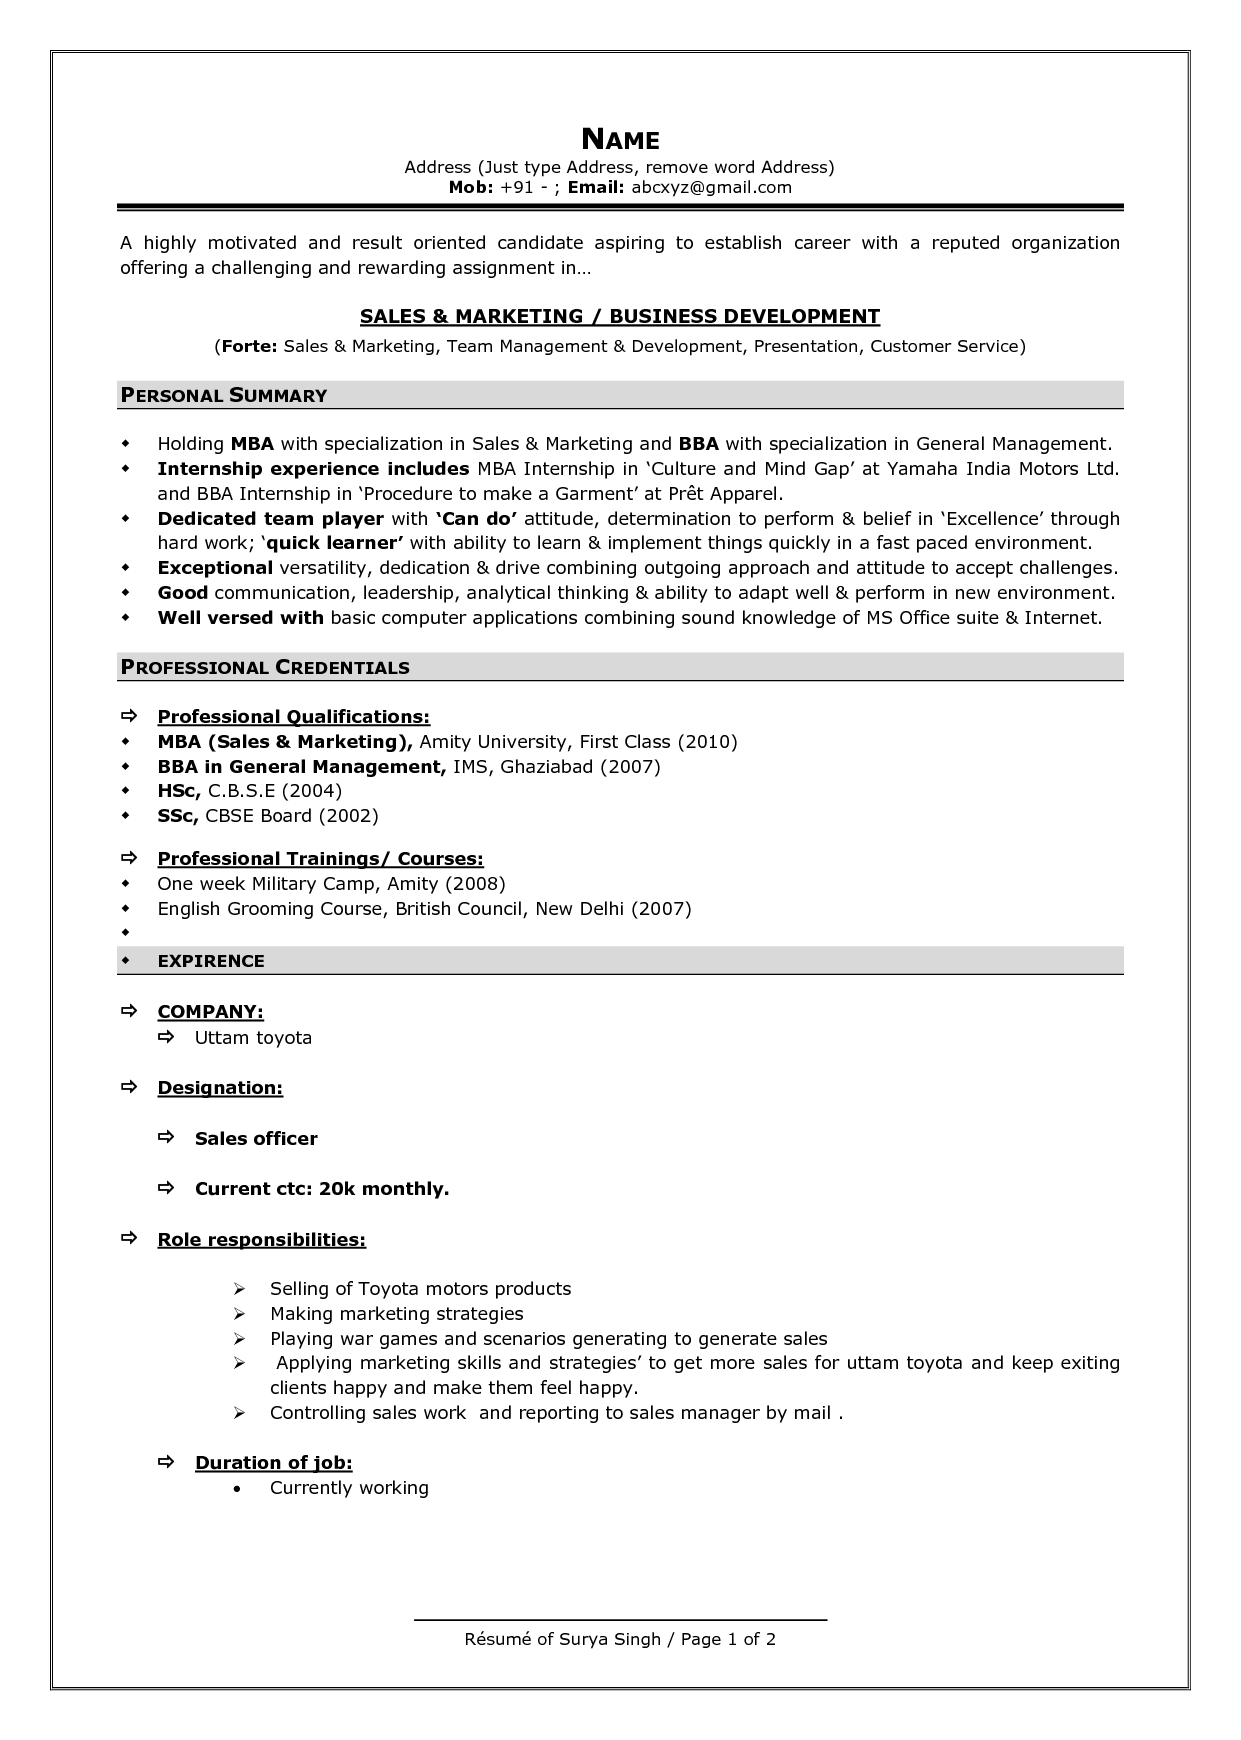 latest resume format doc - Template